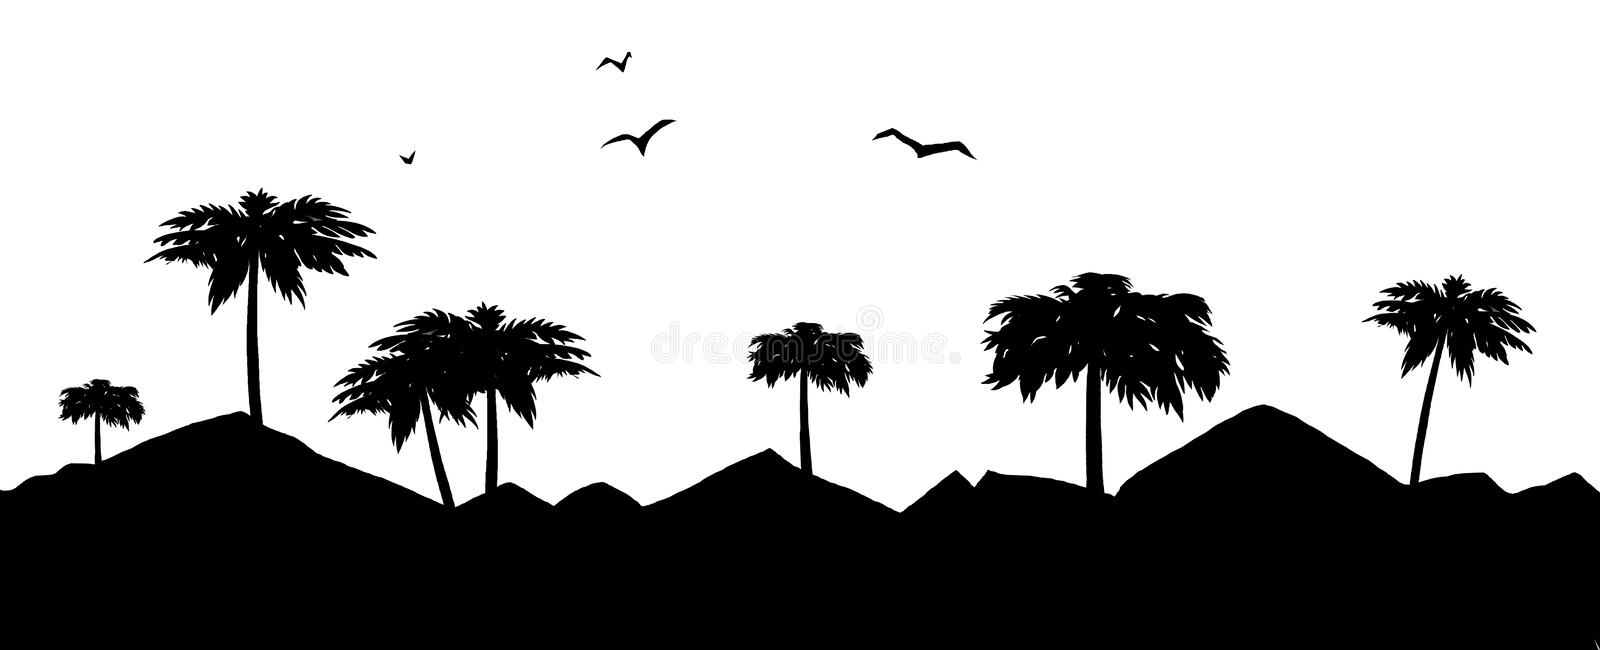 Palm and mountain royalty free illustration